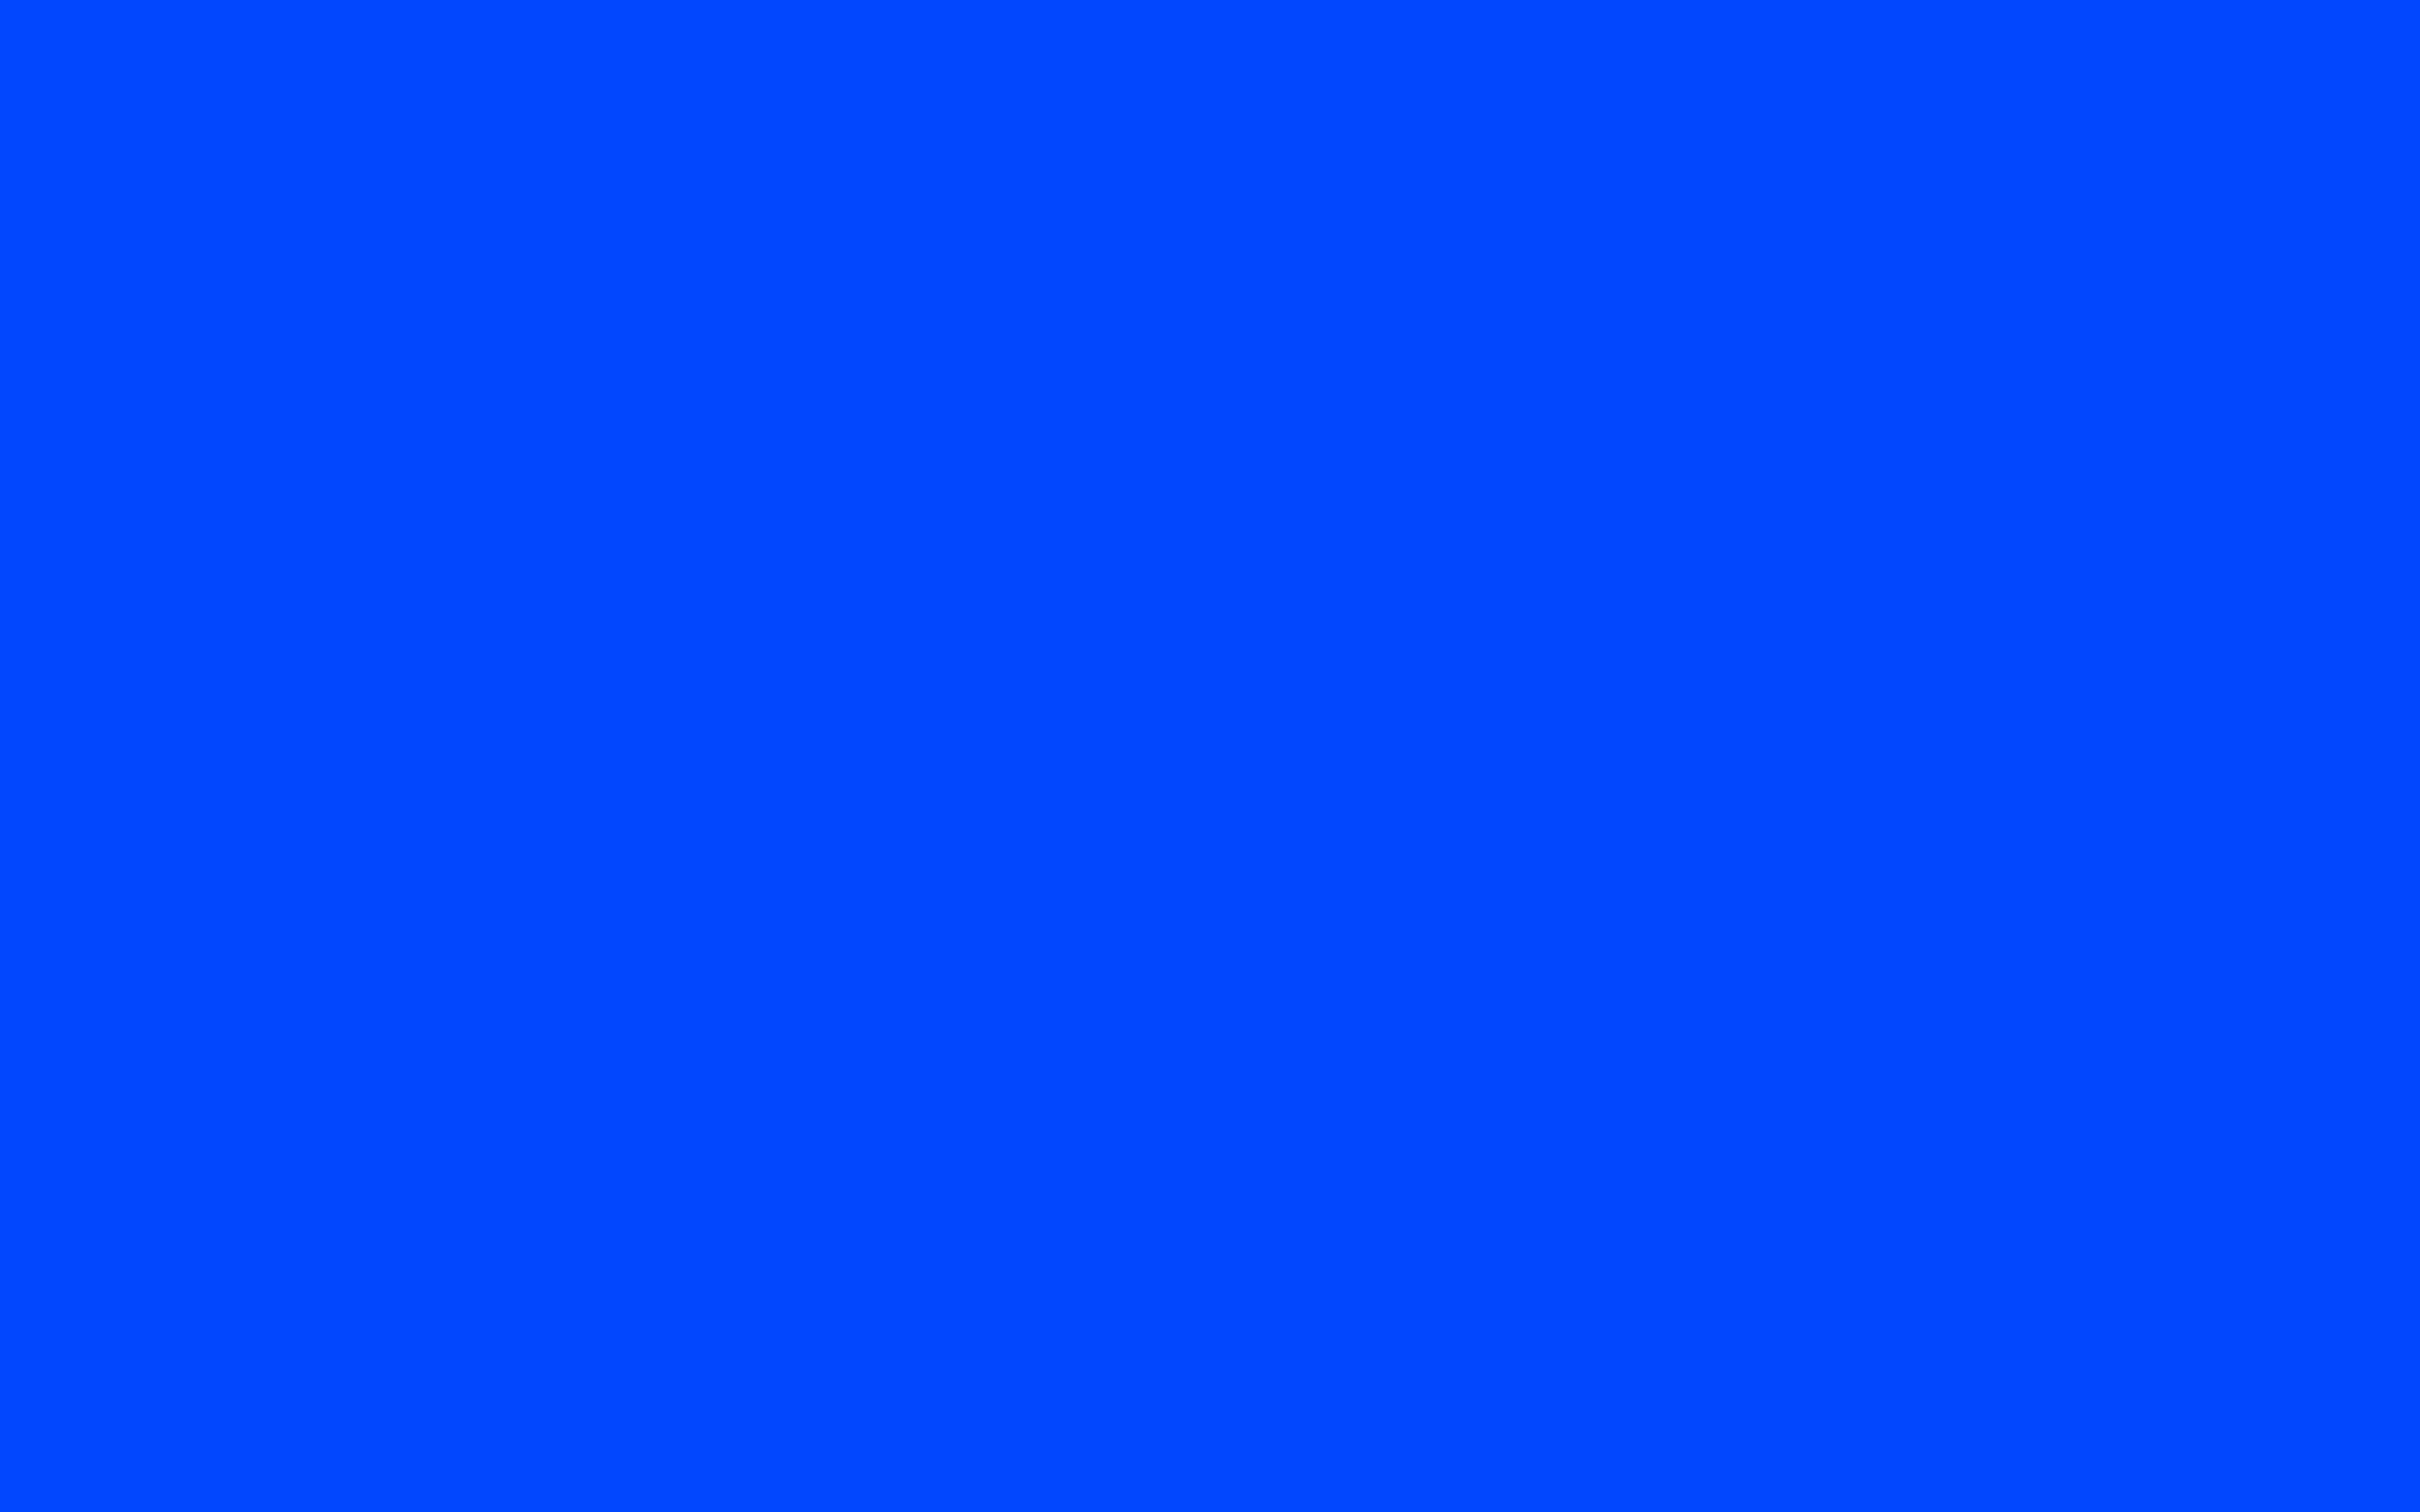 23 Background Color Solid Blue Backgrounds Images 2560x1600 2560x1600